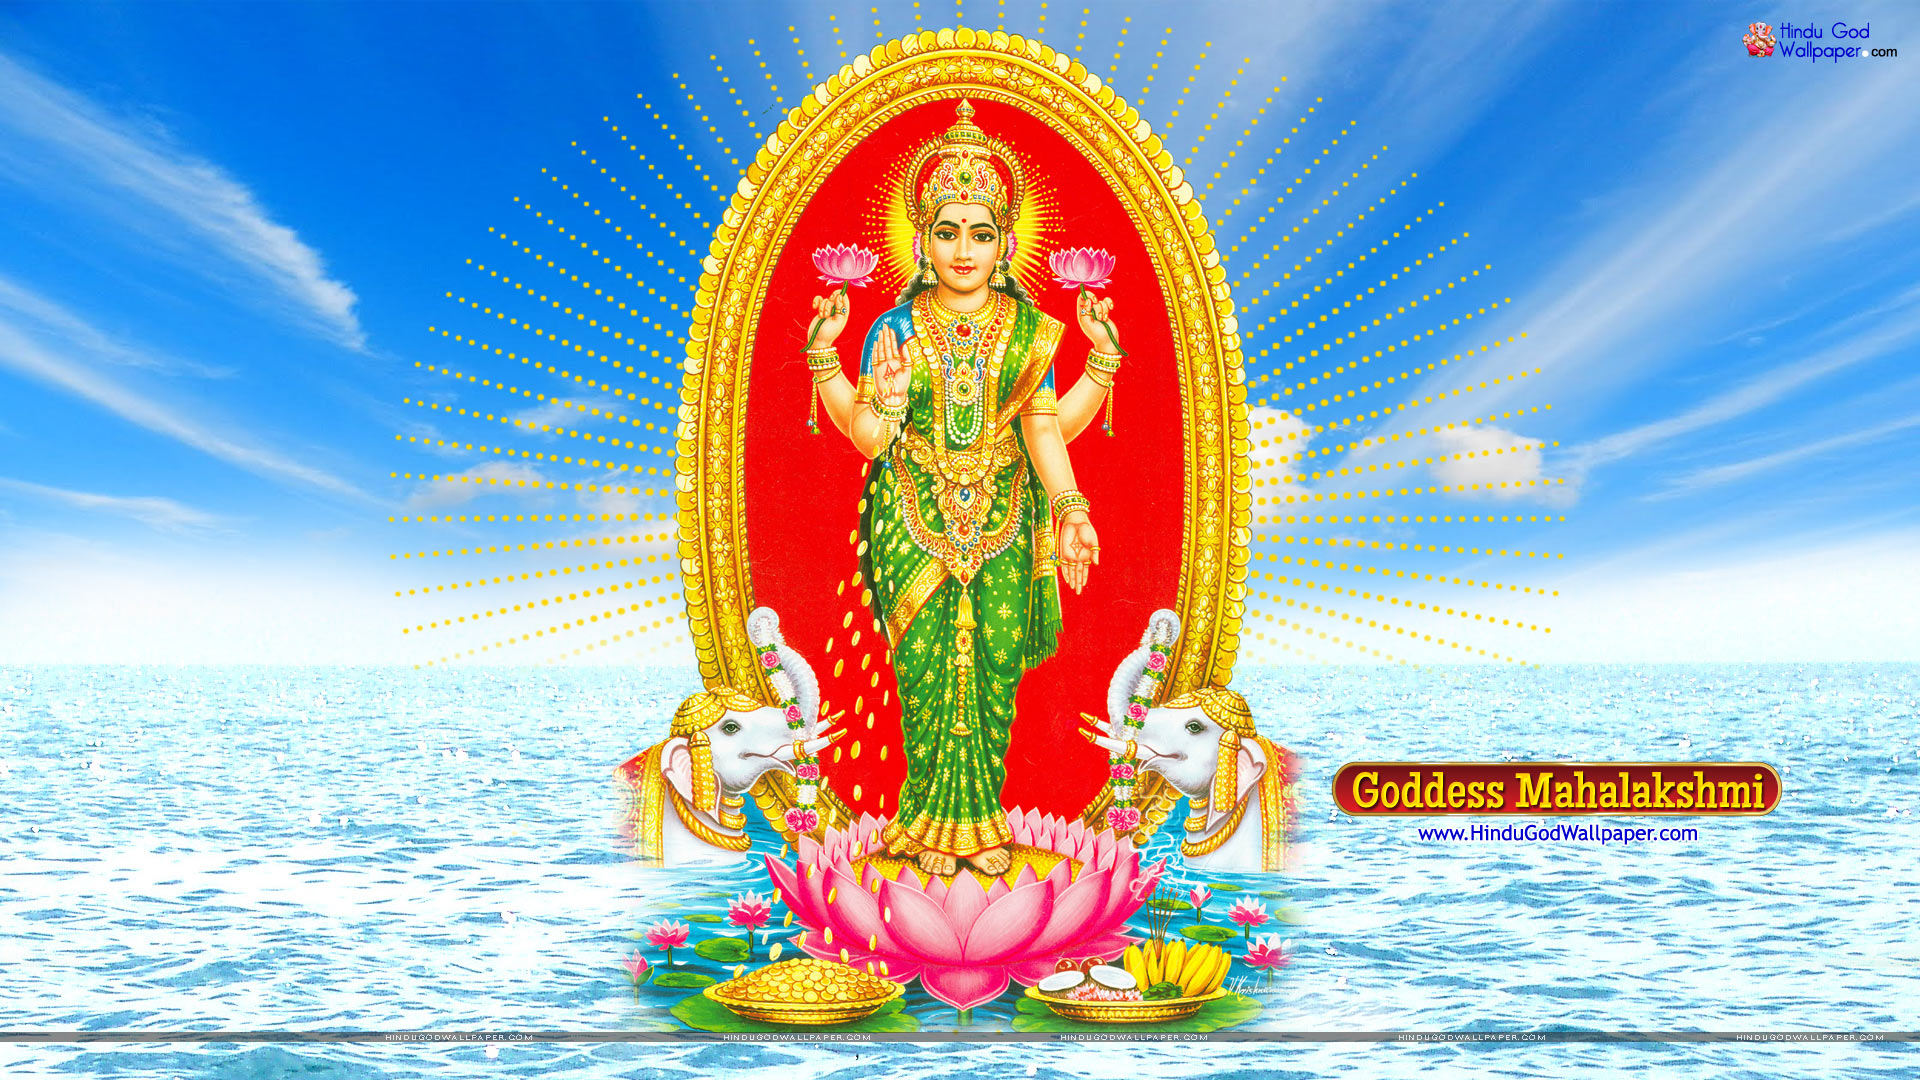 mahalakshmi wallpapers, hd images and photos free download